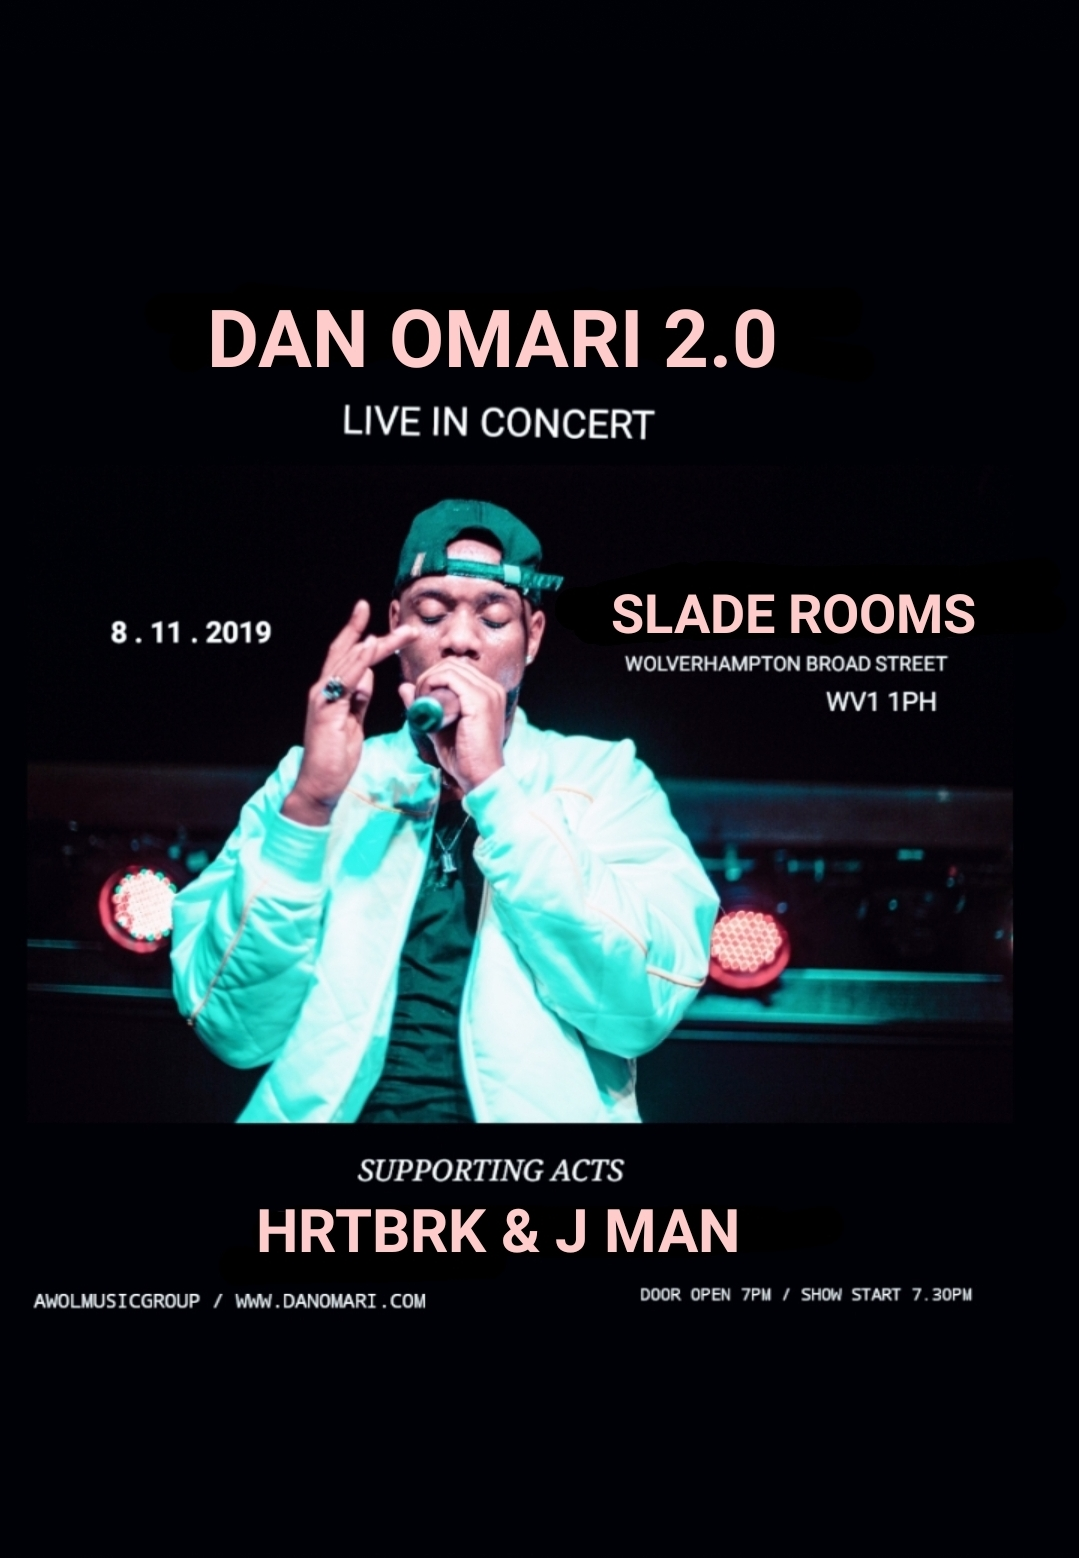 Image for - Dan Omari 2.0 at The Slade Rooms